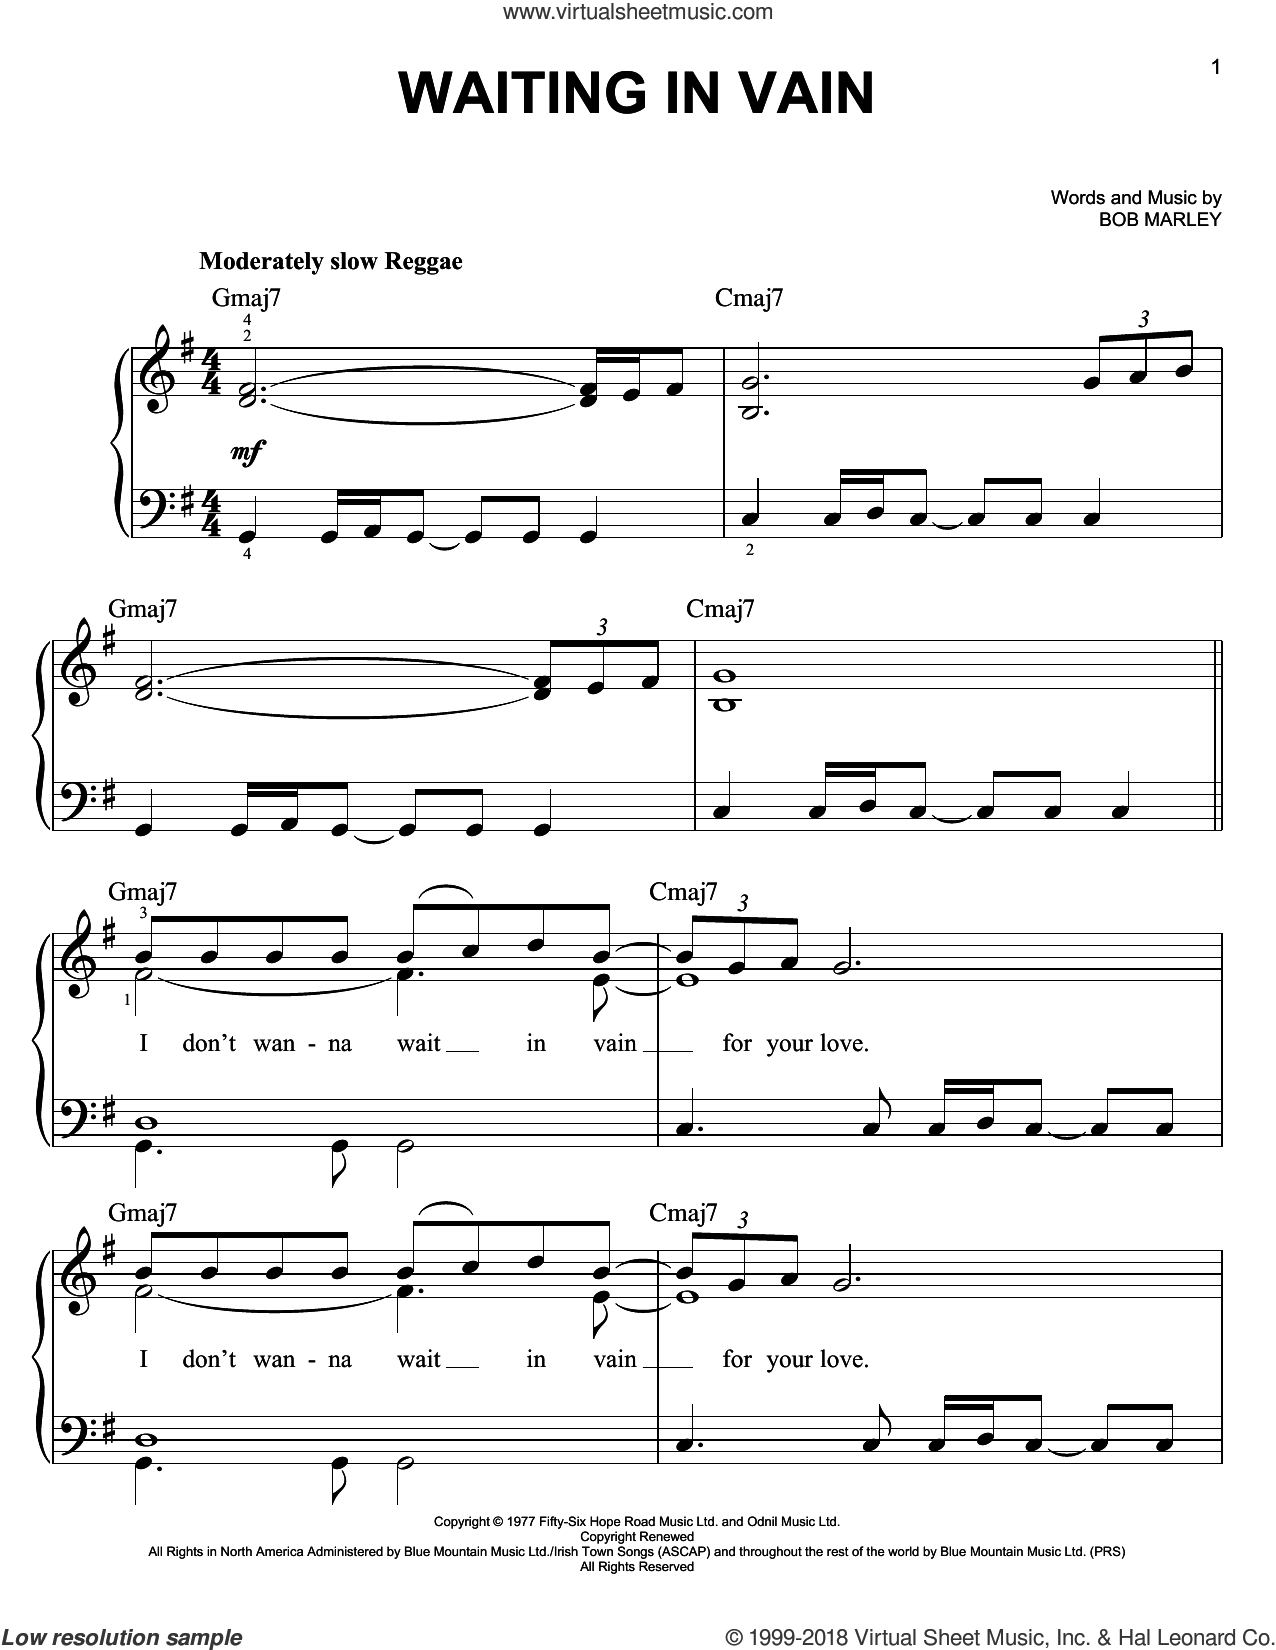 Waiting In Vain sheet music for piano solo by Bob Marley, easy skill level